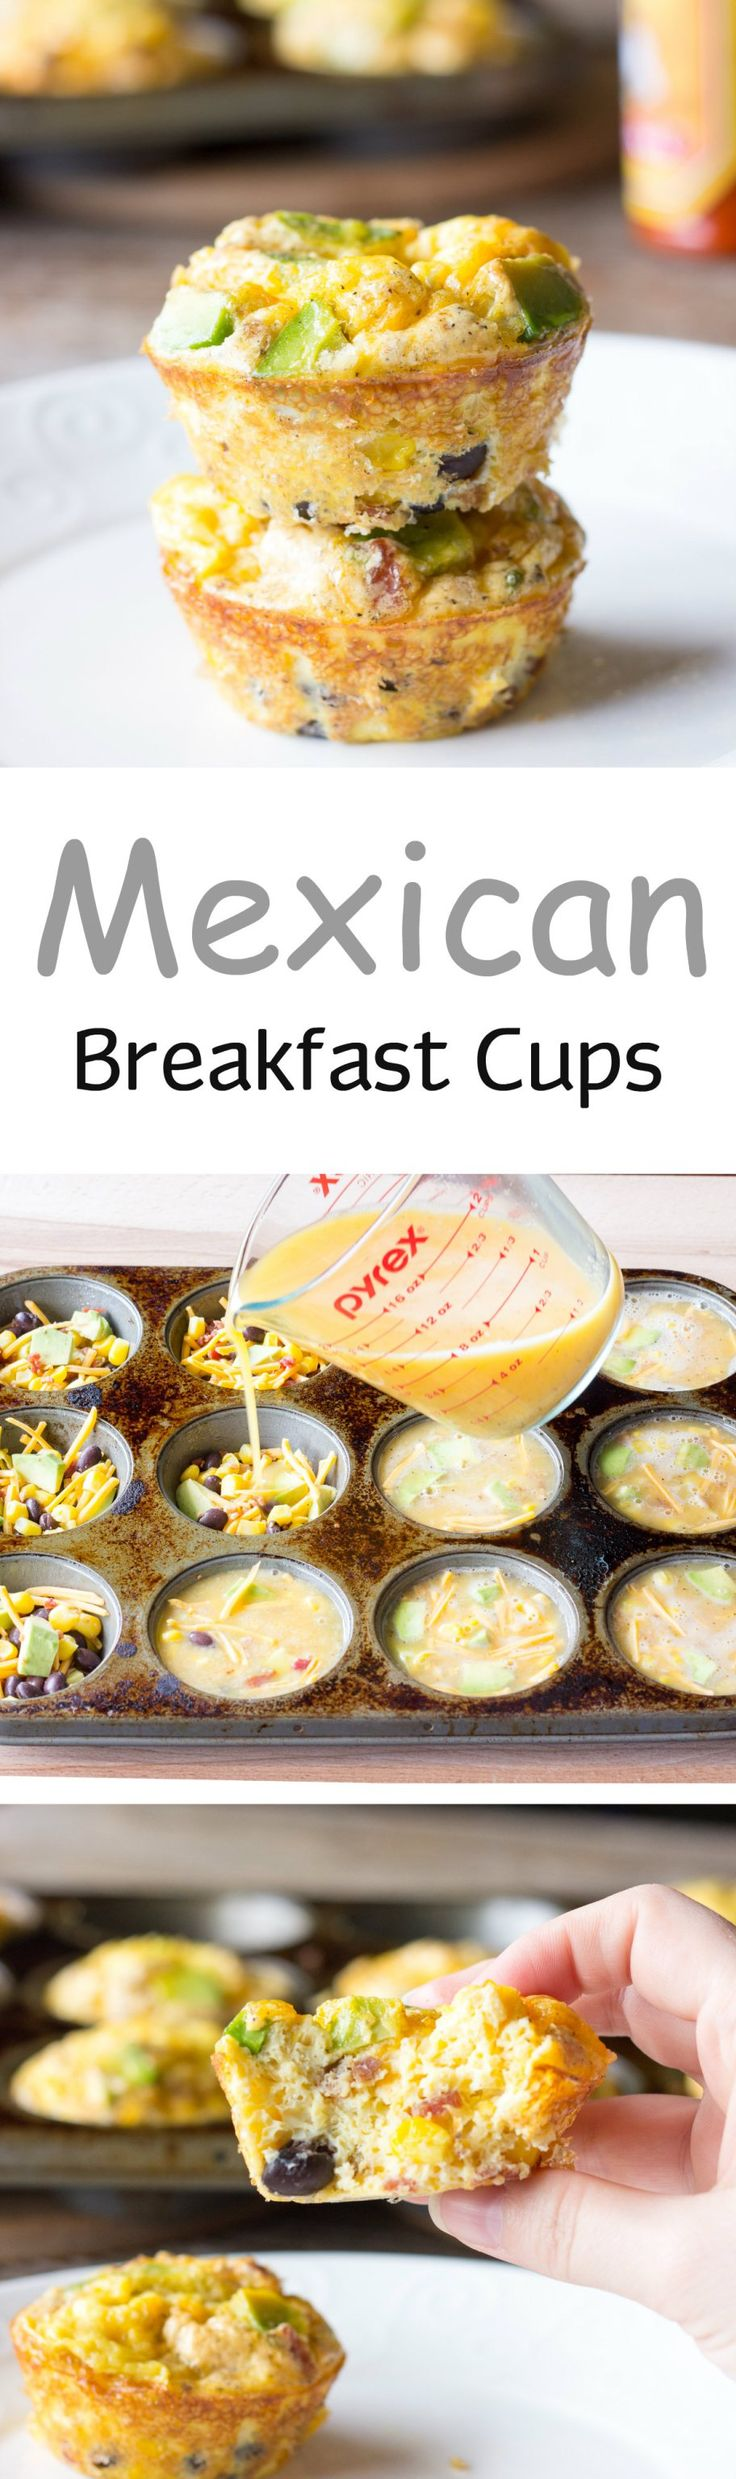 Mexican Breakfast Cups. I think I'd leave out the avocado as I most likely will be freezing them. Sub in salsa & green chilis & maybe cilantro? No flour?